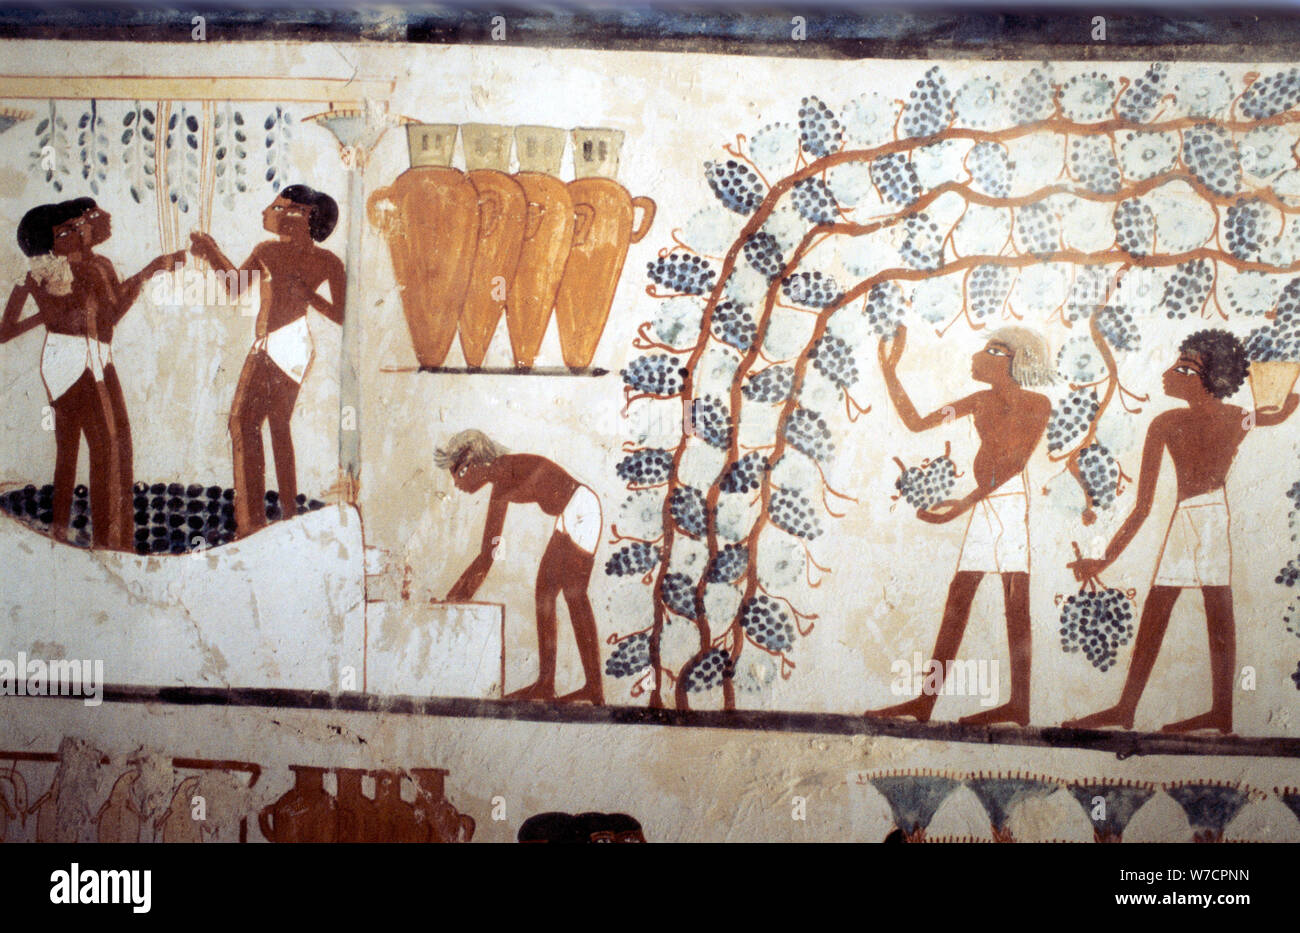 Egyptian Tomb Wall Painting From Immagini E Fotos Stock Alamy